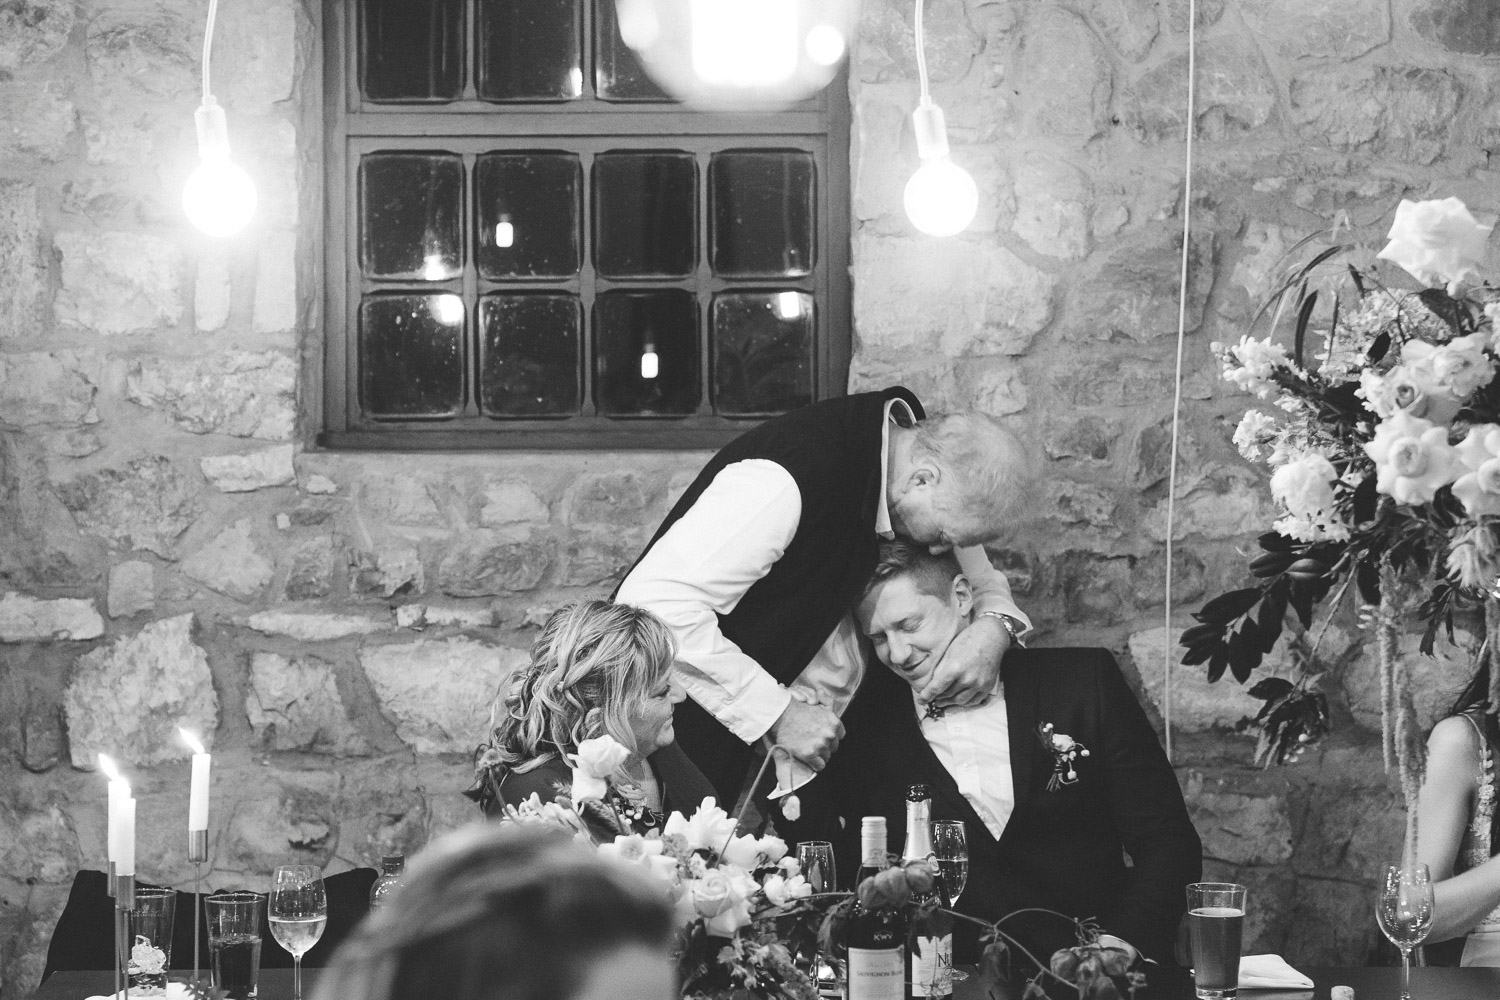 western-cape-photoghers-gen-scott-greyton-wedding-photography-charlie-ray168.jpg